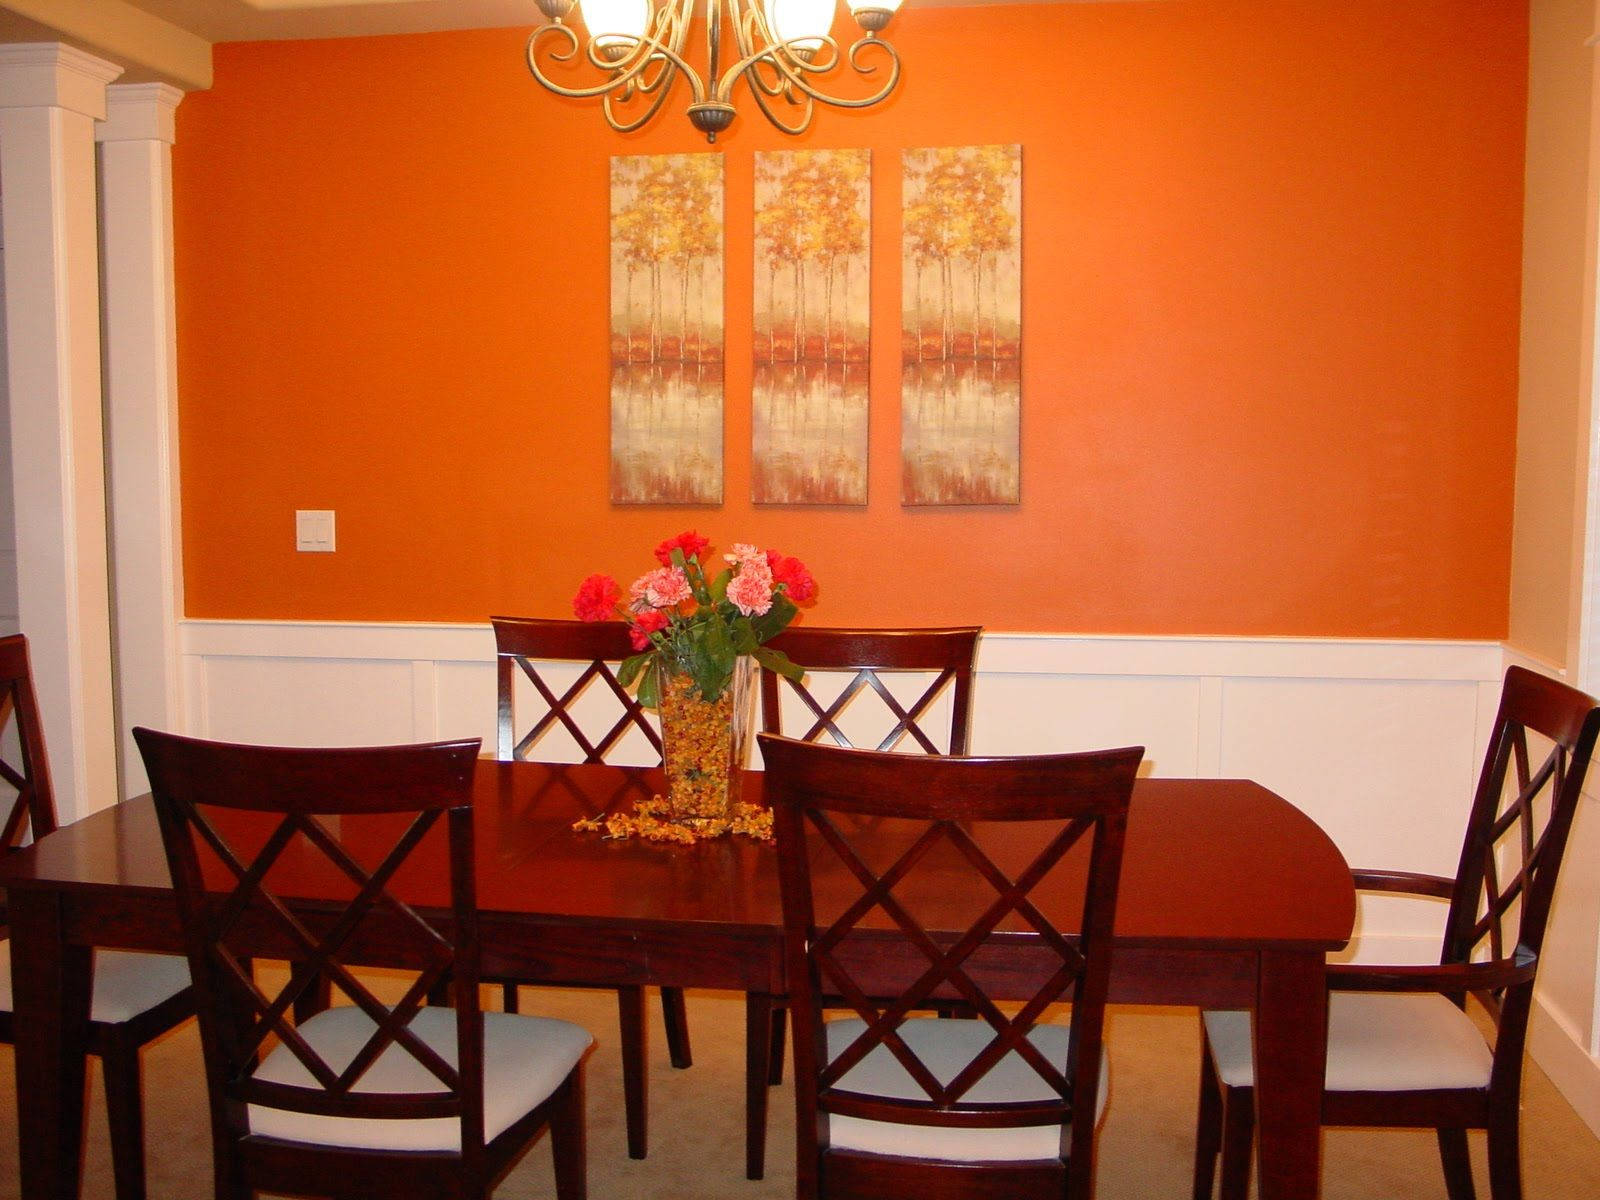 Red Dining Room Accessories: Orange, Red, And Green Kitchen And Dining Room